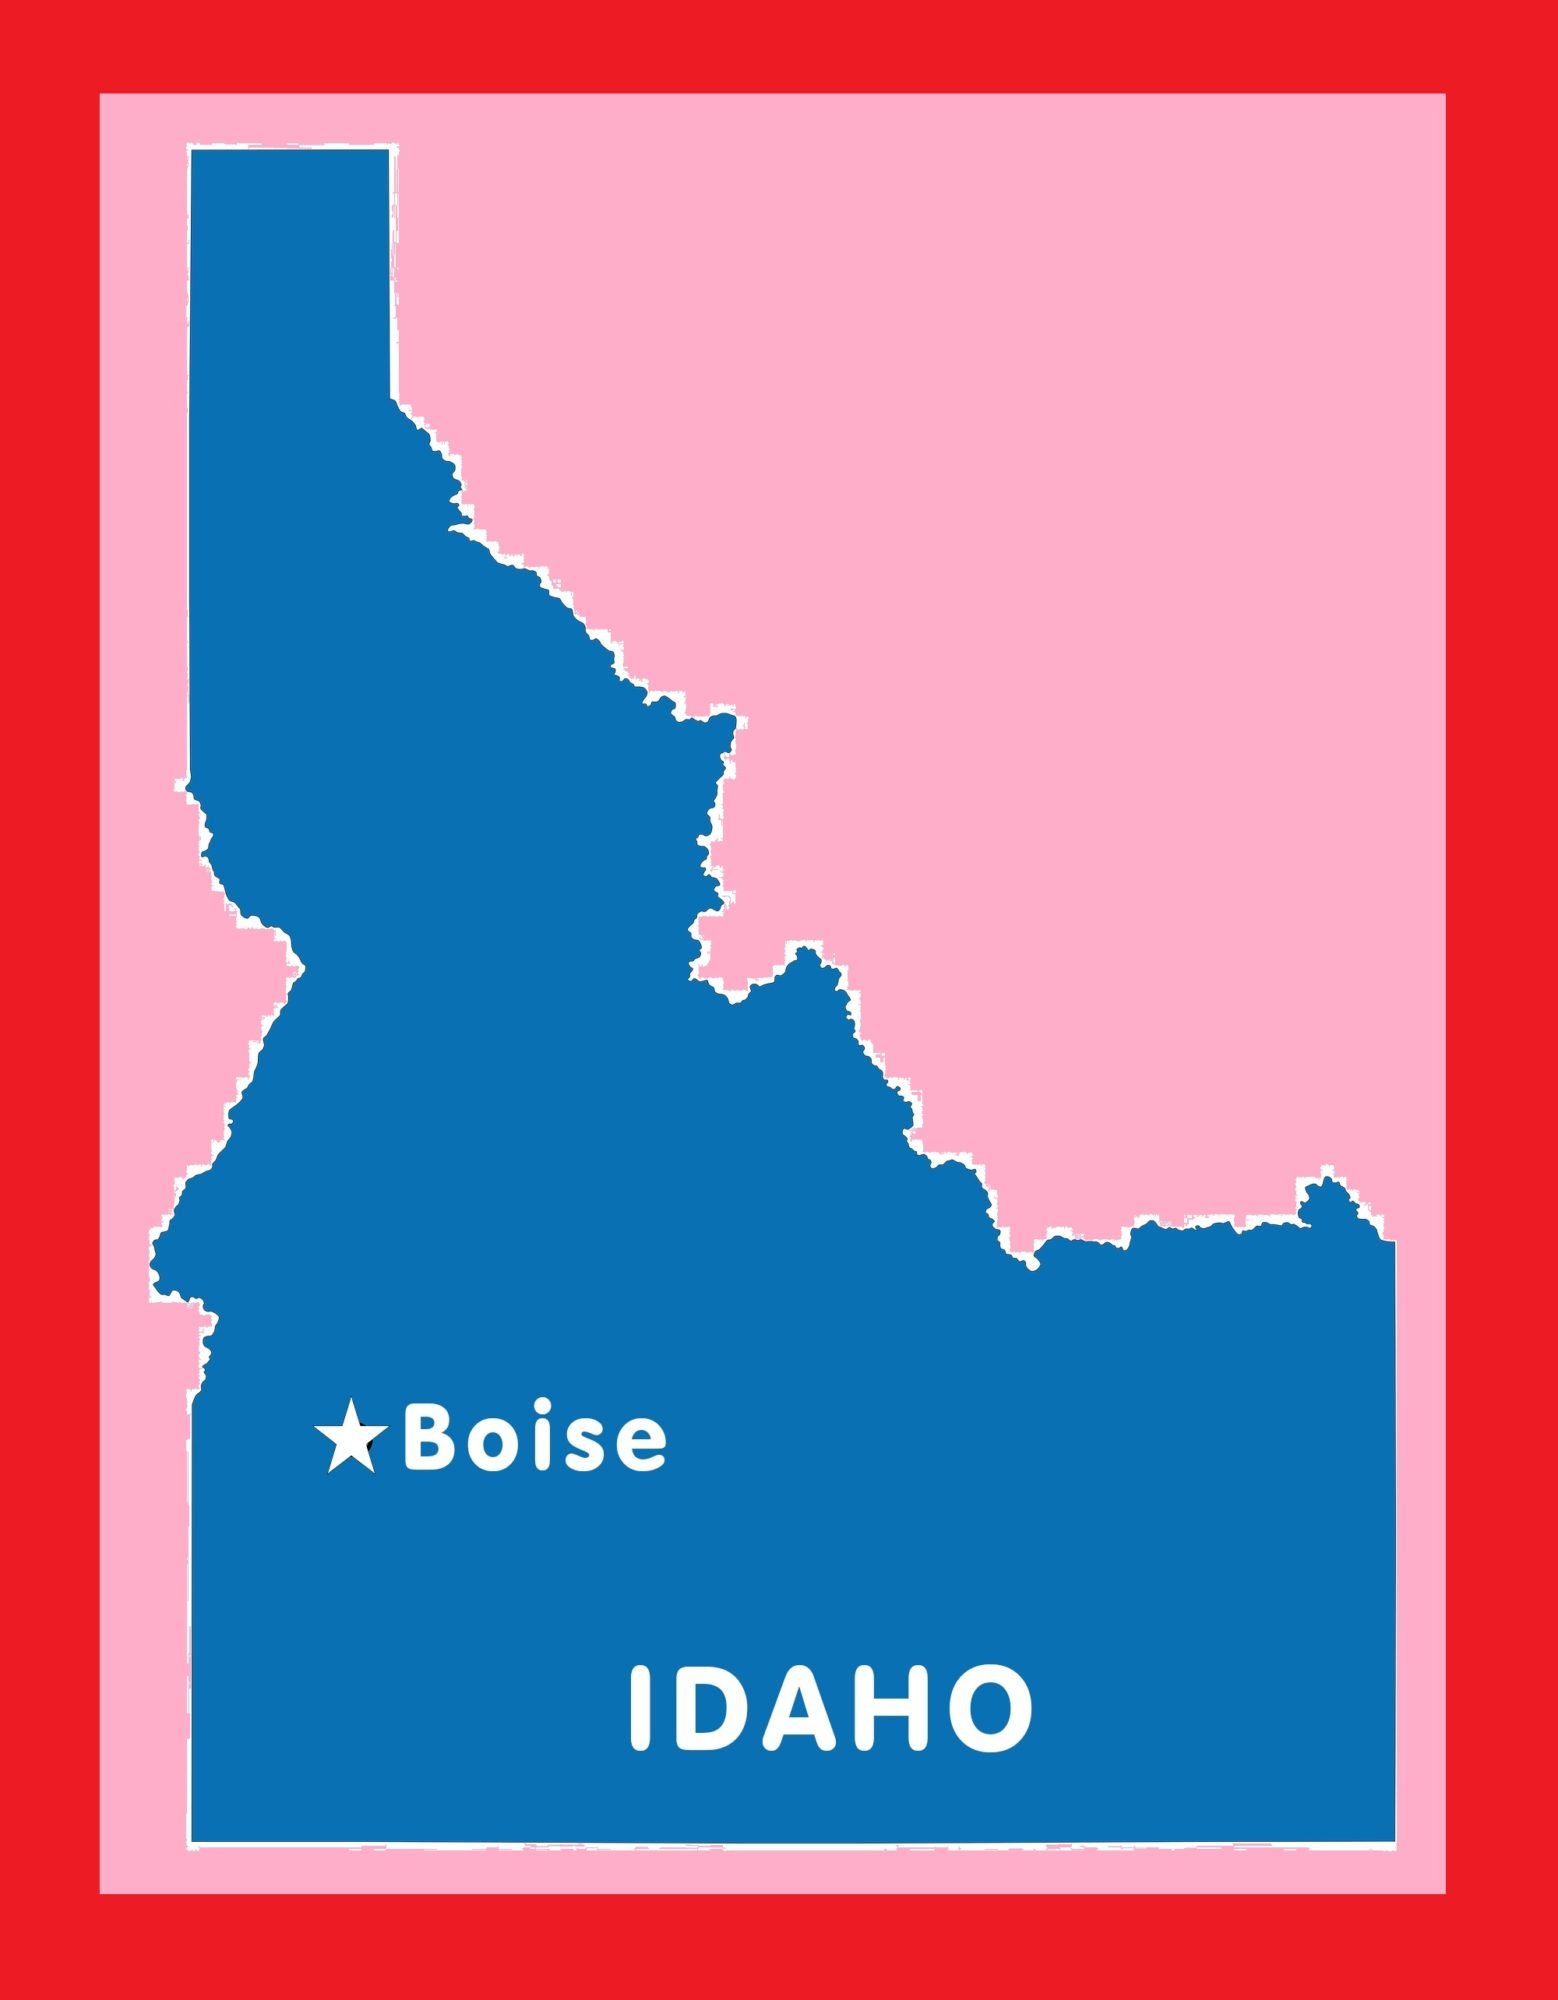 Idaho Capital Map | Large Printable and Standard Map 8